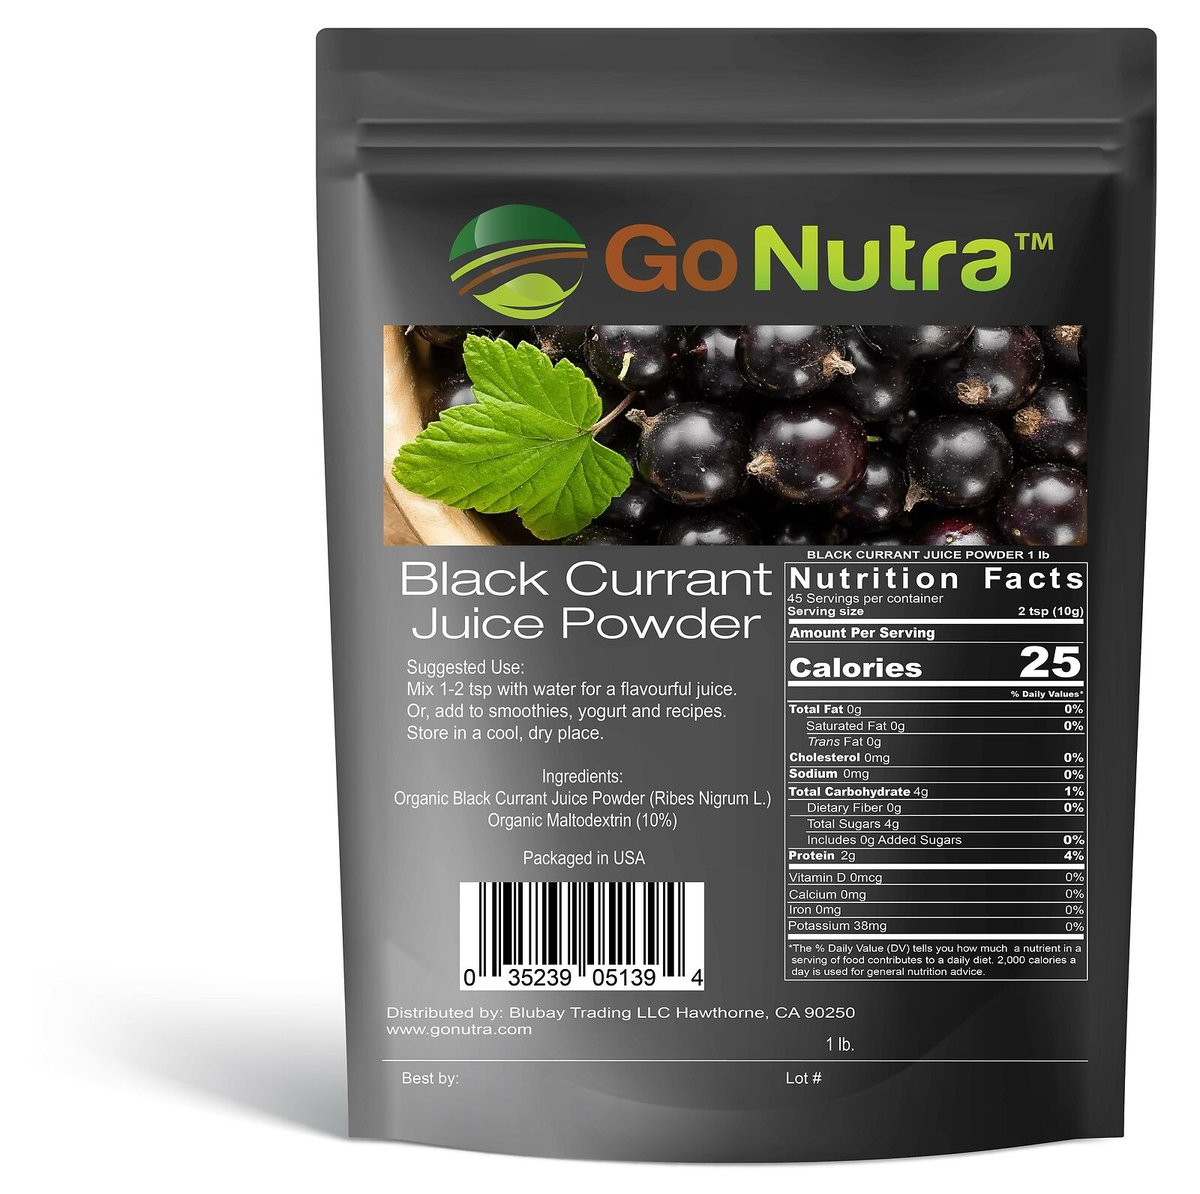 Blackcurrants can protect your digestive, circulatory, nervous, and excretory systems. Try our Black currant juice powder! https://t.co/WZ82G9DCcL #healthy #beachbody #sweating #followforfollow #crossfit #fit #superfood #fitfiance #noexcuses #grinding #weightloss #eathealthy https://t.co/4x2XDUd7sC